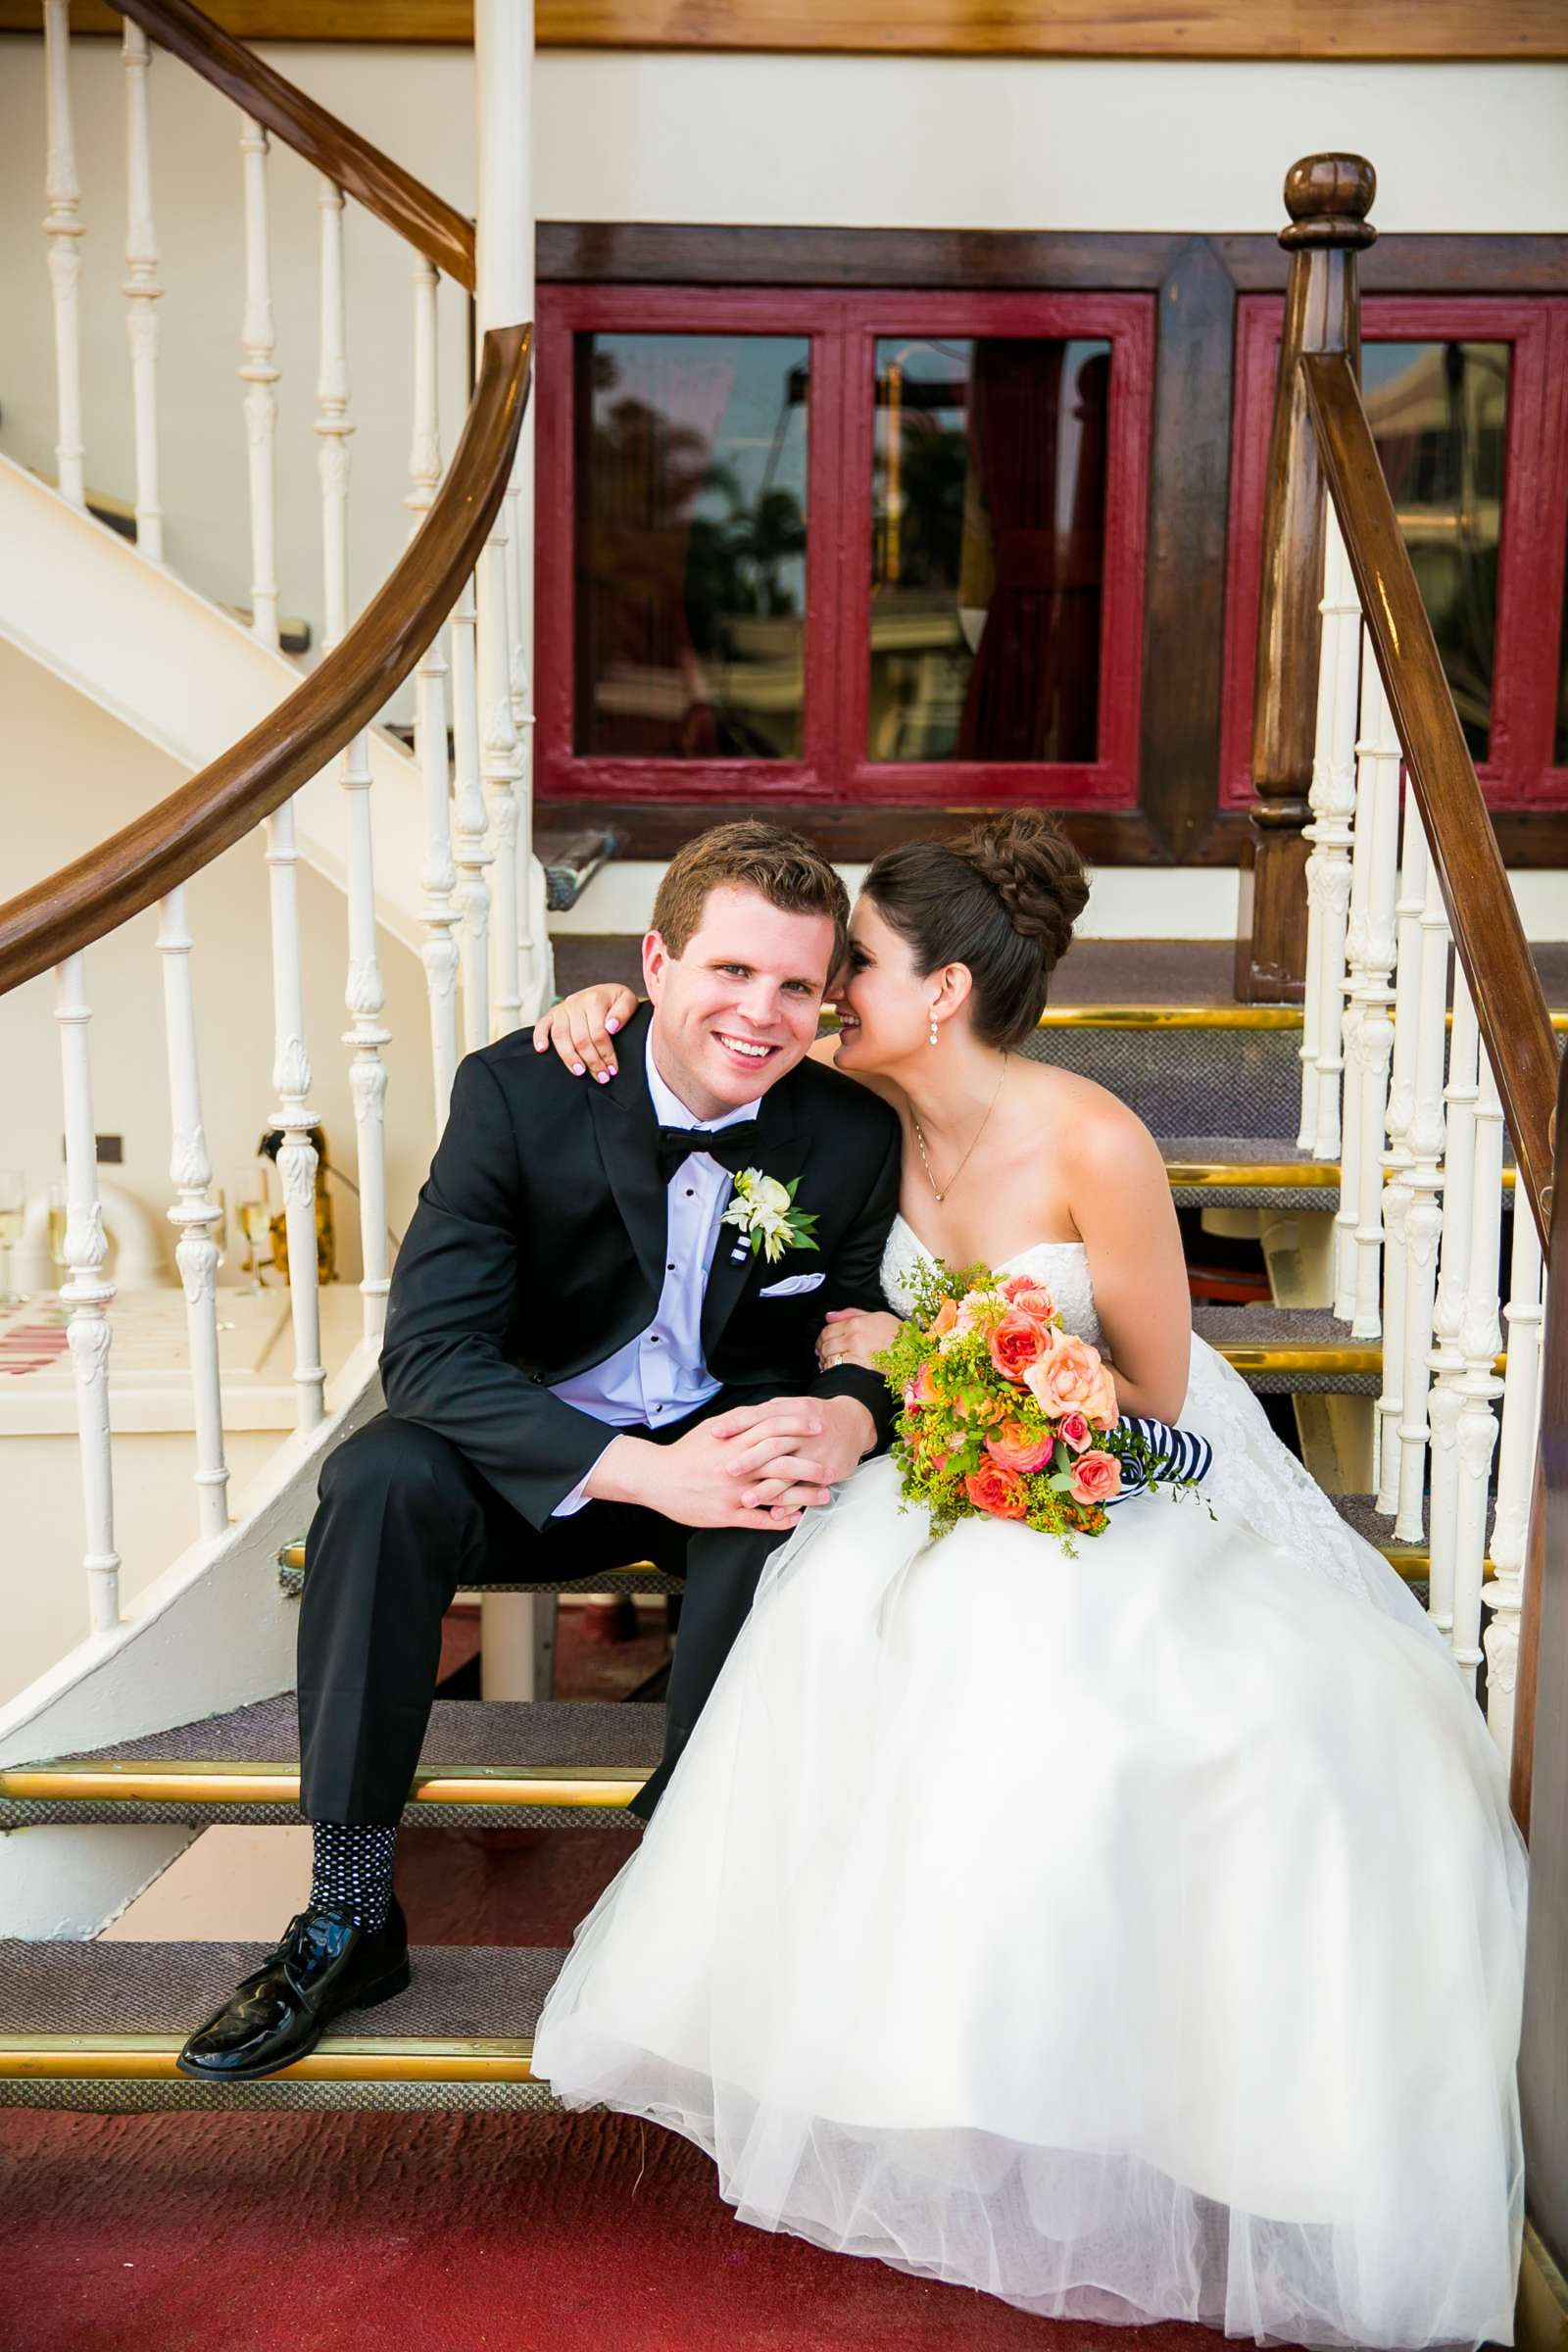 Bahia Hotel Wedding coordinated by I Do Weddings, Meredith and Jack Wedding Photo #70 by True Photography